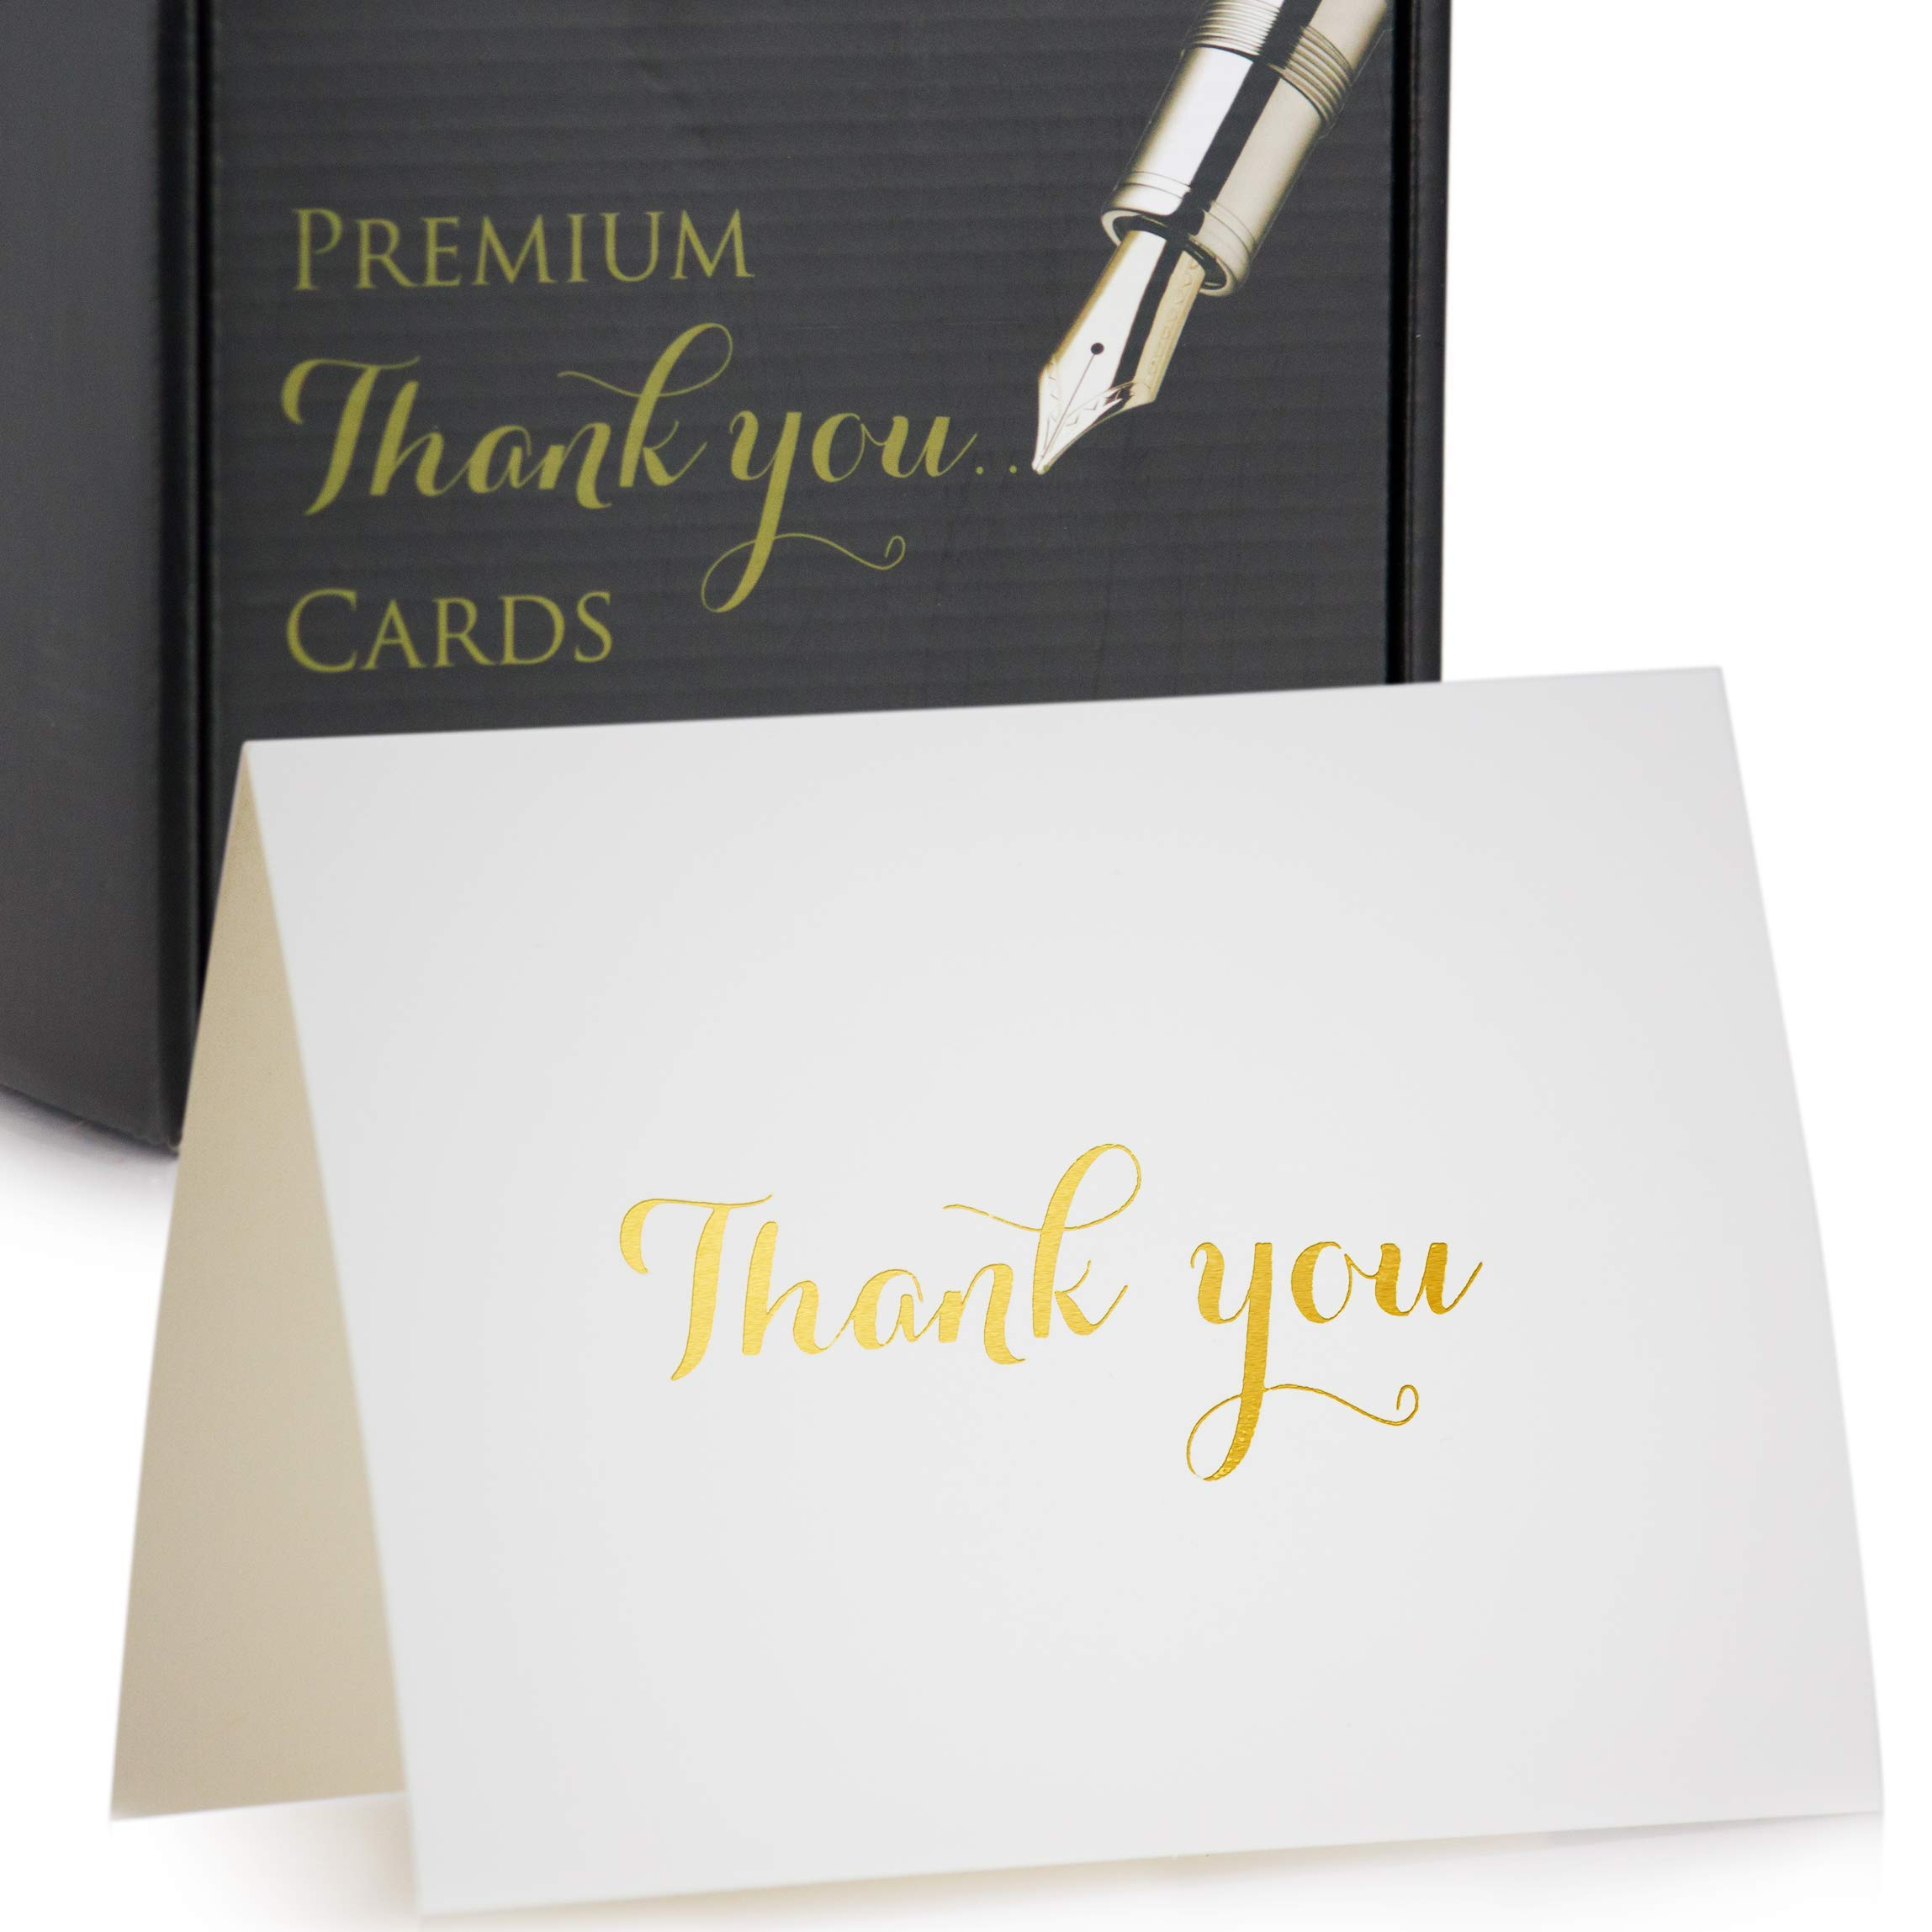 Thank You Cards - Set Of 100 White Thank You Notes In Gold Foil Embossed Lettering And Matching Bulk Envelopes - Perfect For All Occasions Including Weddings, Bridal Showers And Baby Showers